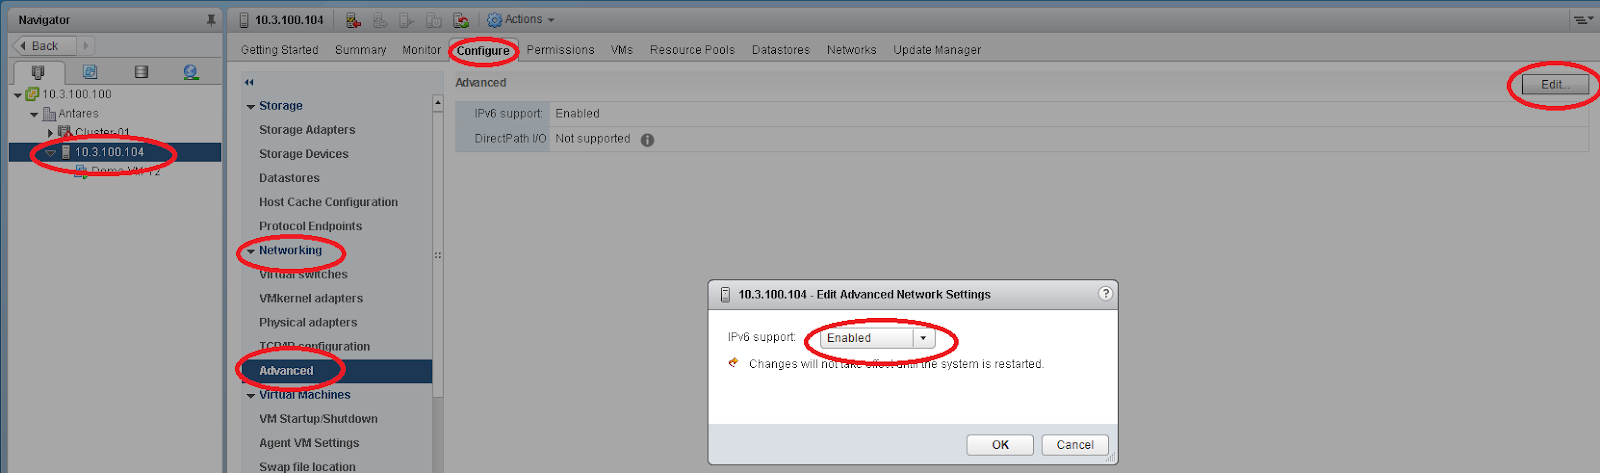 Enabling IPv6 for ESXi in vSphere Web Client (Flash)